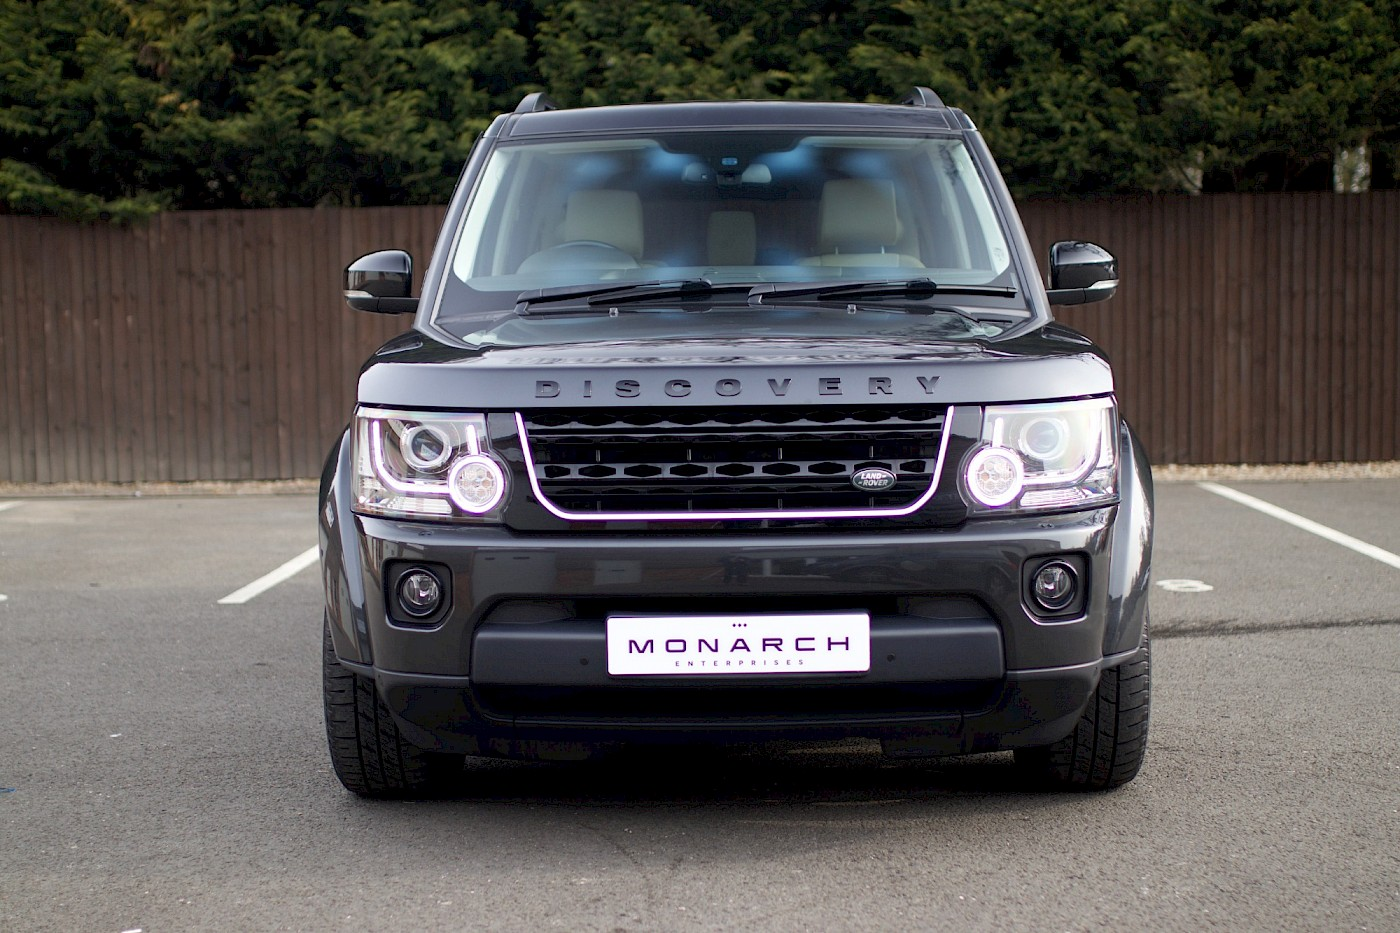 2015/15 Land Rover Discovery HSE Luxury SDV6 18